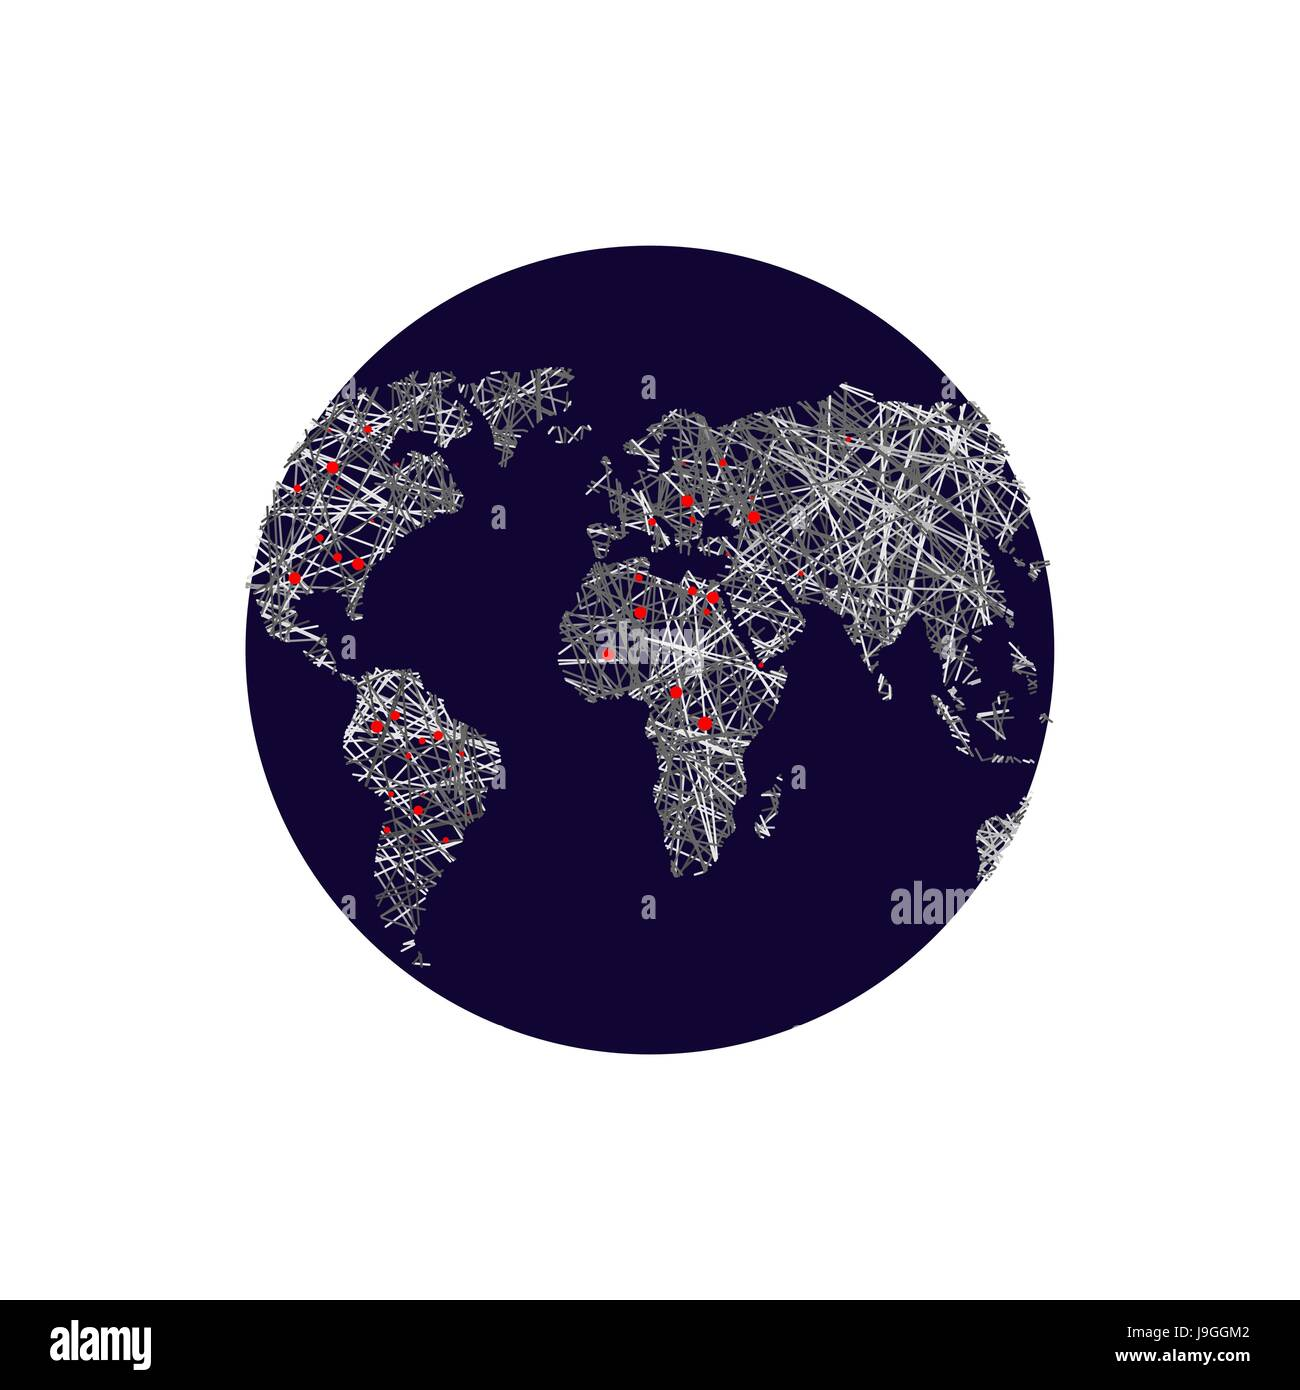 Black earth linear world map red lights capitals world atlas black earth linear world map red lights capitals world atlas means of communication and relationships on planet earth gumiabroncs Image collections